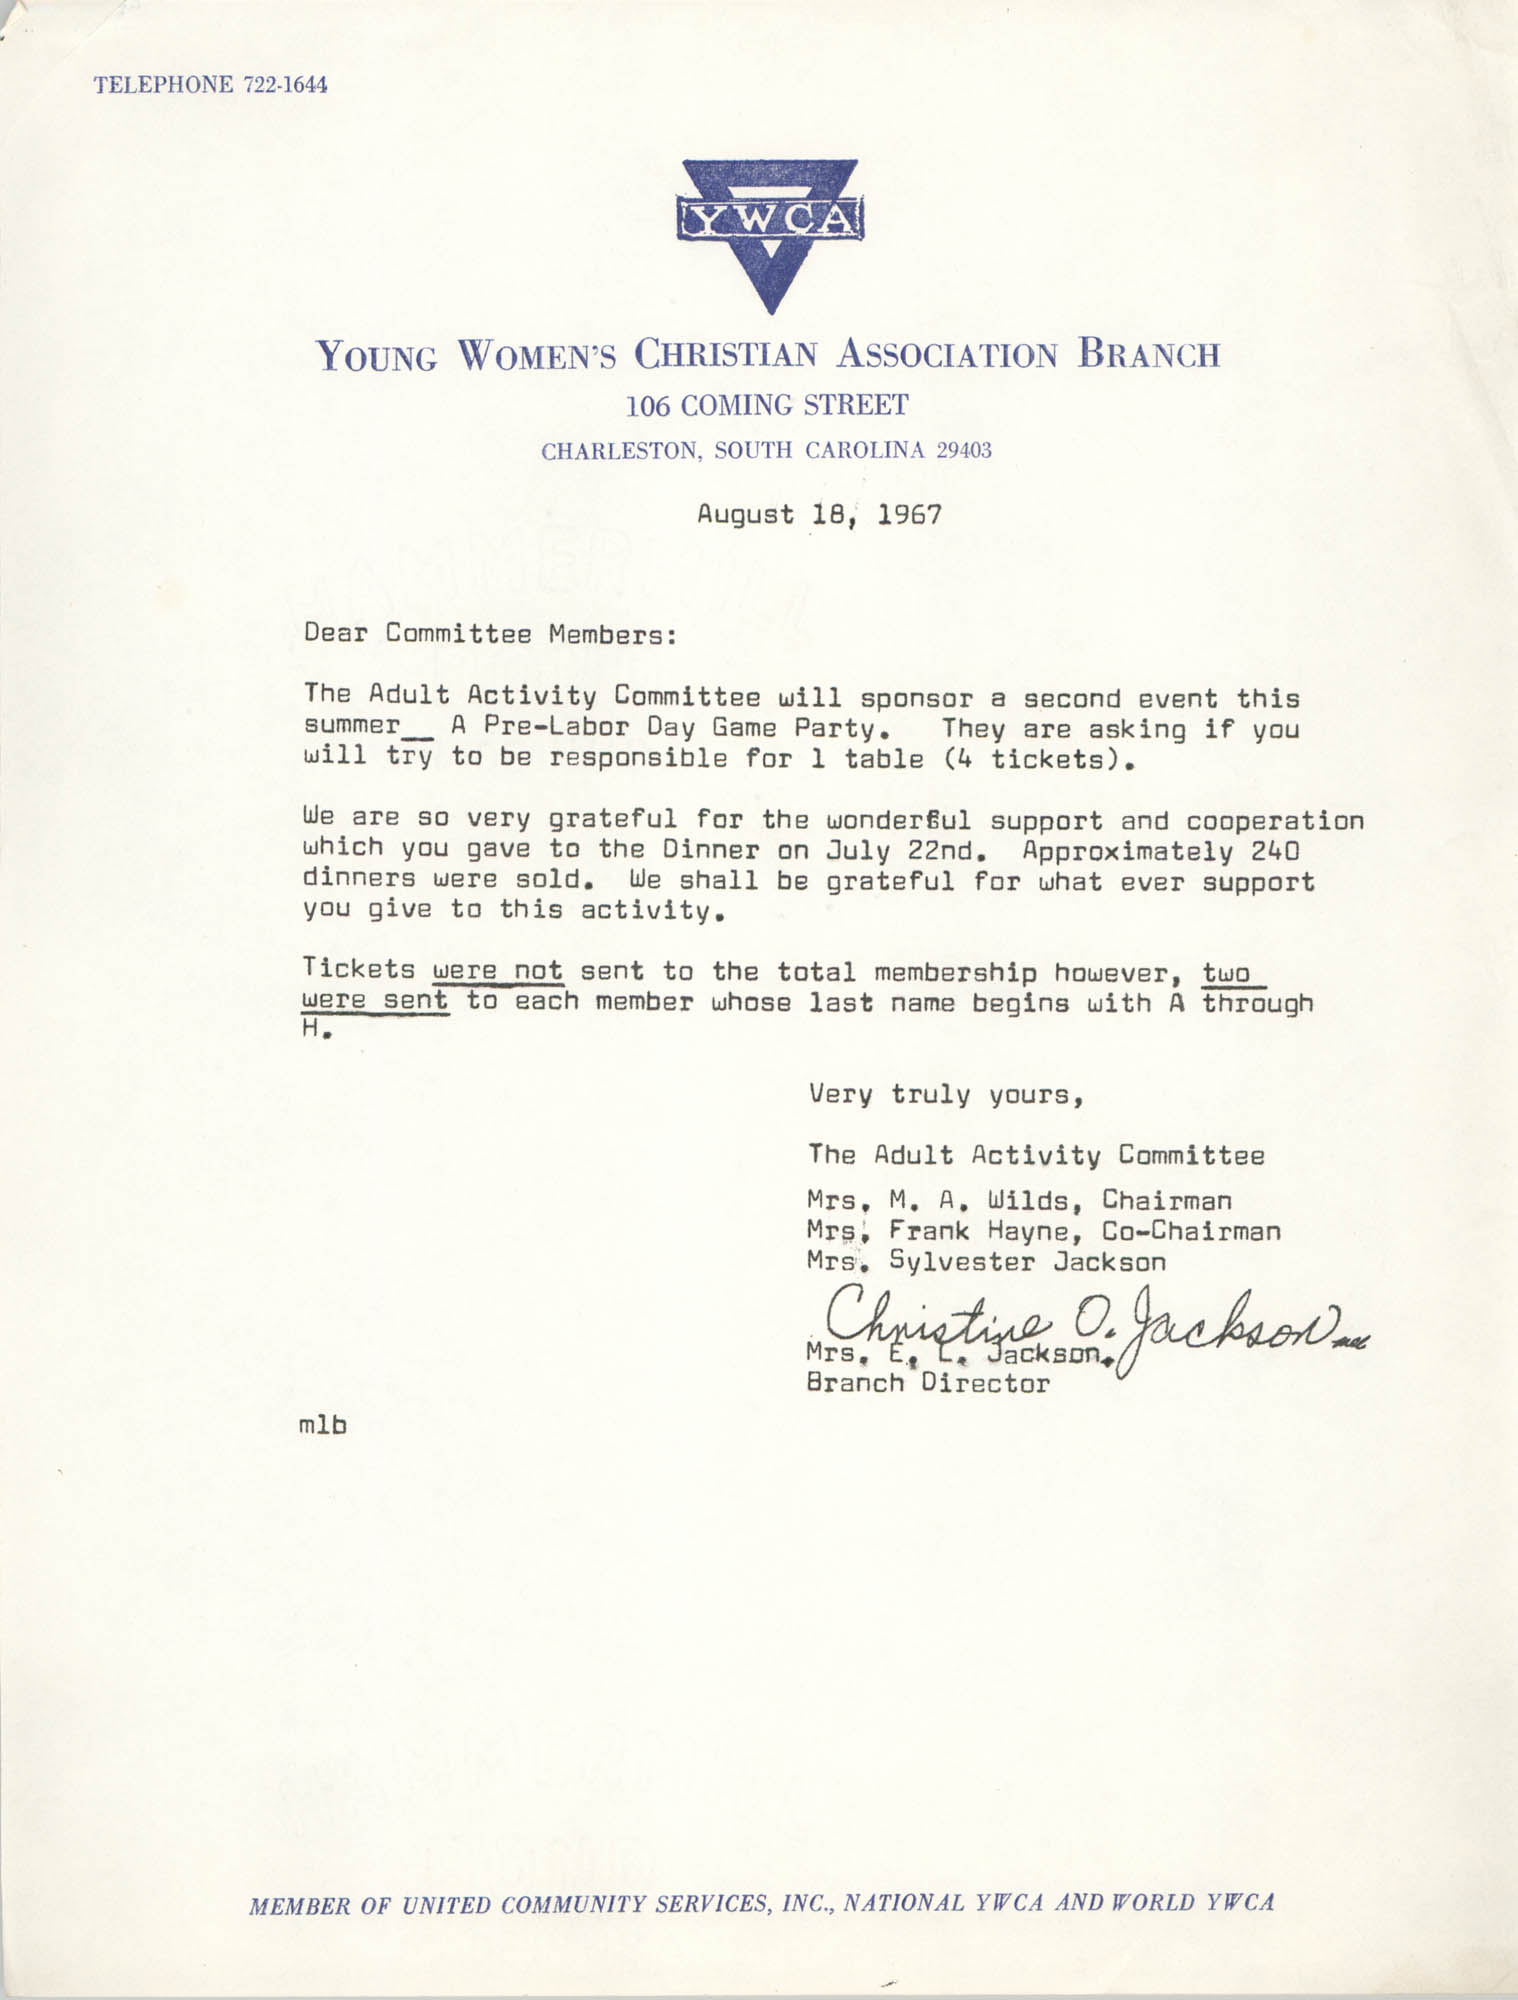 Letter from Christine O. Jackson to Coming Street Y.W.C.A. Committee Members, August 18, 1967